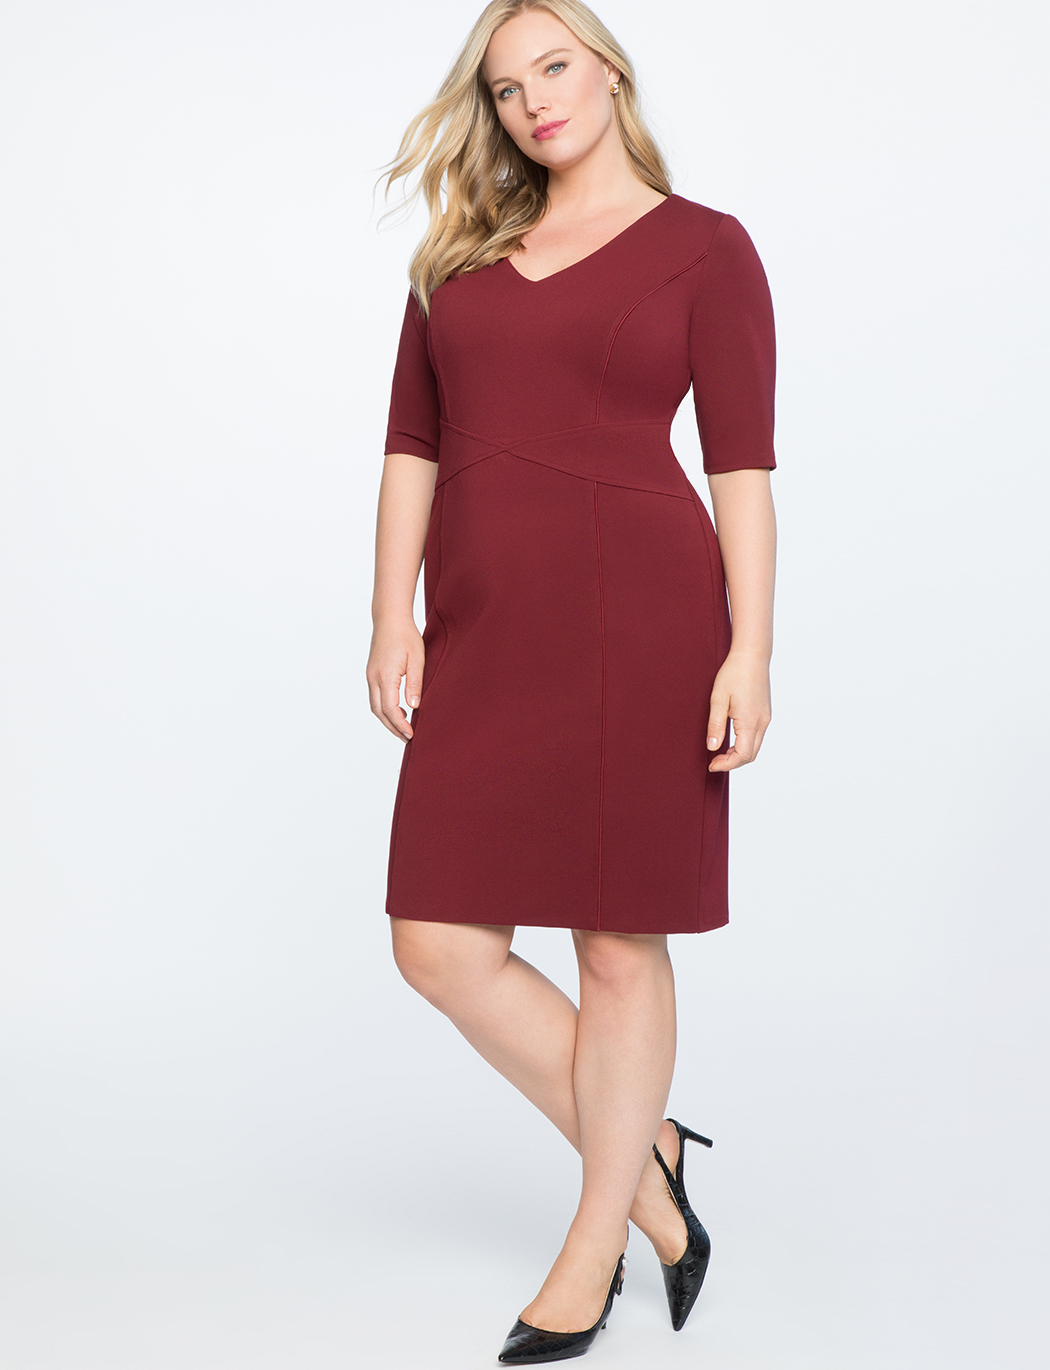 9-to-5 Stretch Work Dress